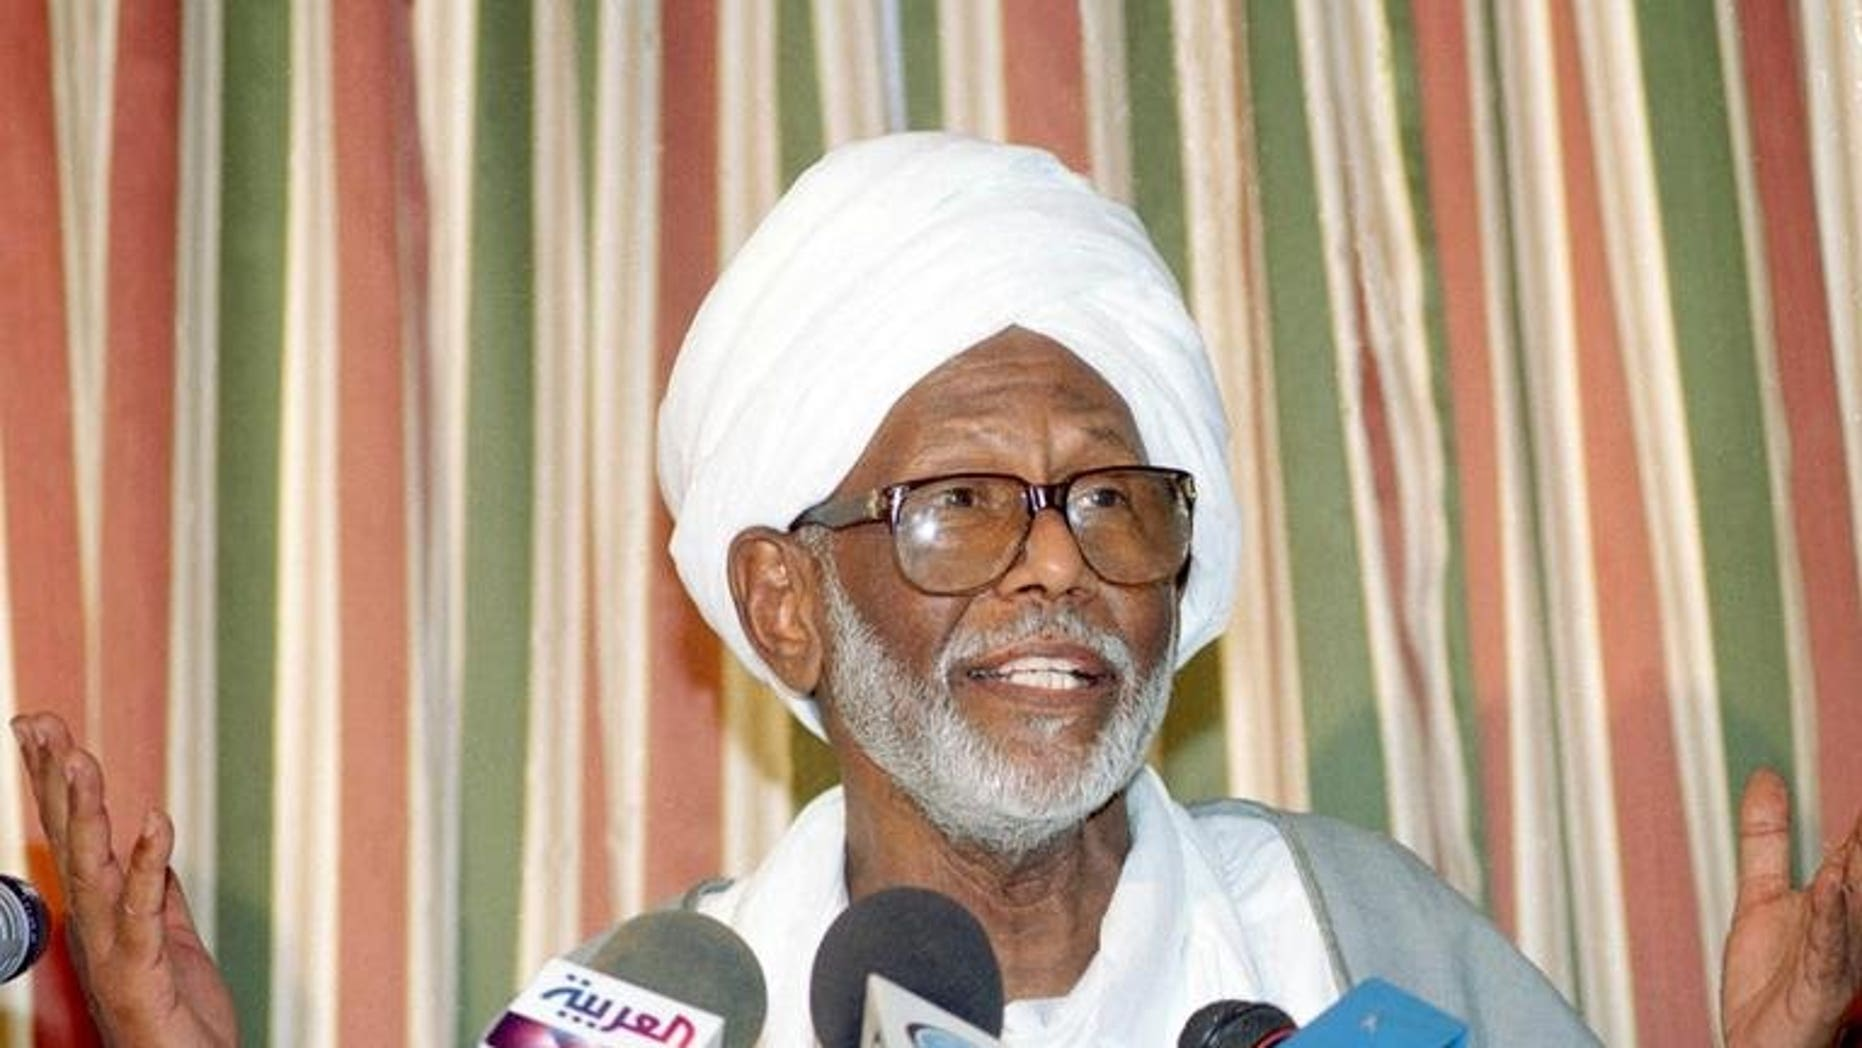 Sudan's Popular Congress Party (PCP) leader Hassan al-Turabi speaks during a press conference in Khartoum, on October 14, 2003. The PCP say that Yousef Mohammed Saleh Lebis -- who was jailed in connection with an alleged coup attempt in 2004 -- has been released by Sudanese authorities.